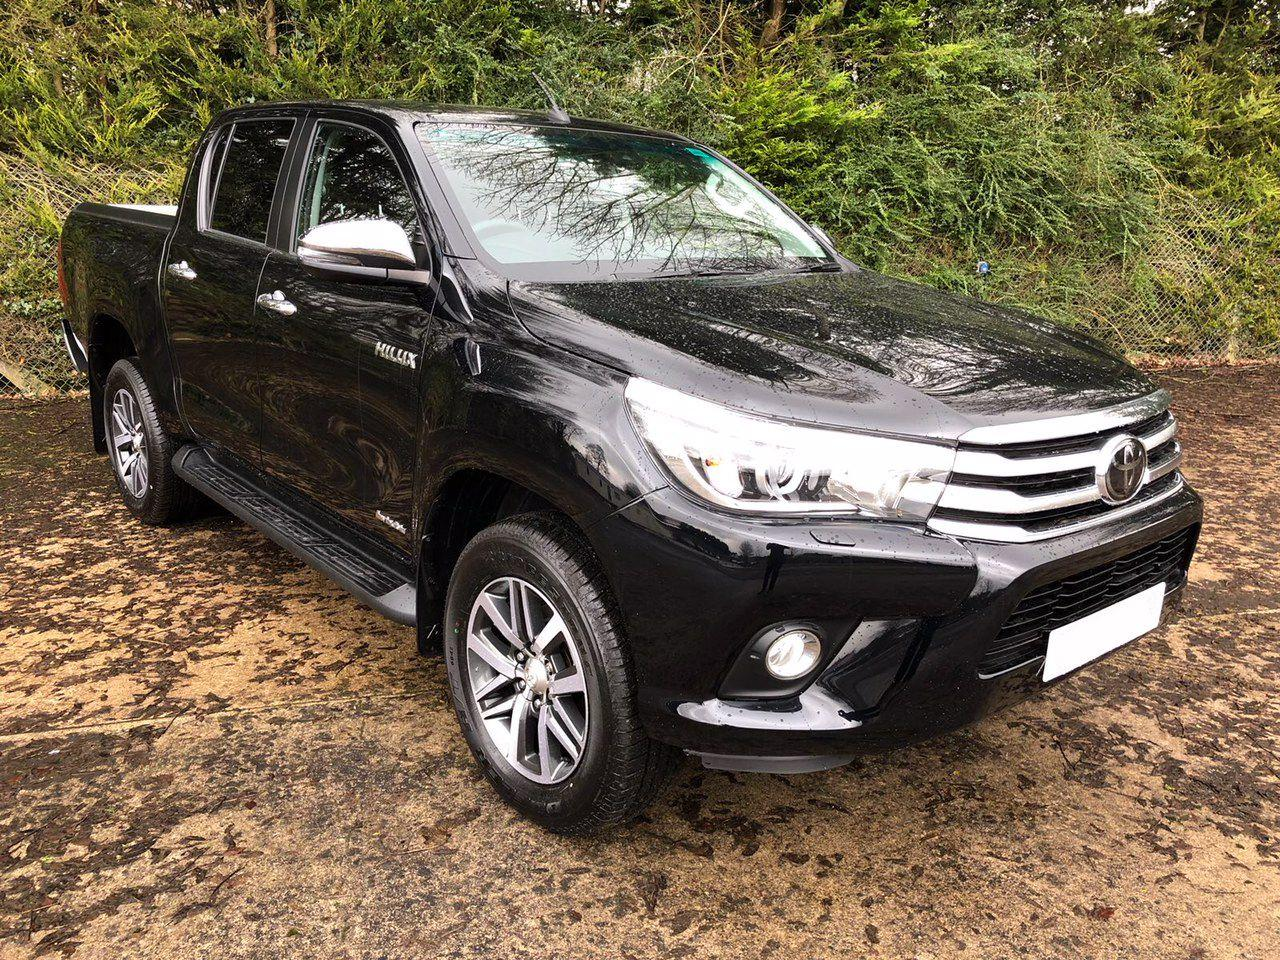 Toyota Hilux 2.4 D4D Invincible Auto Pick Up Diesel Metallic Black